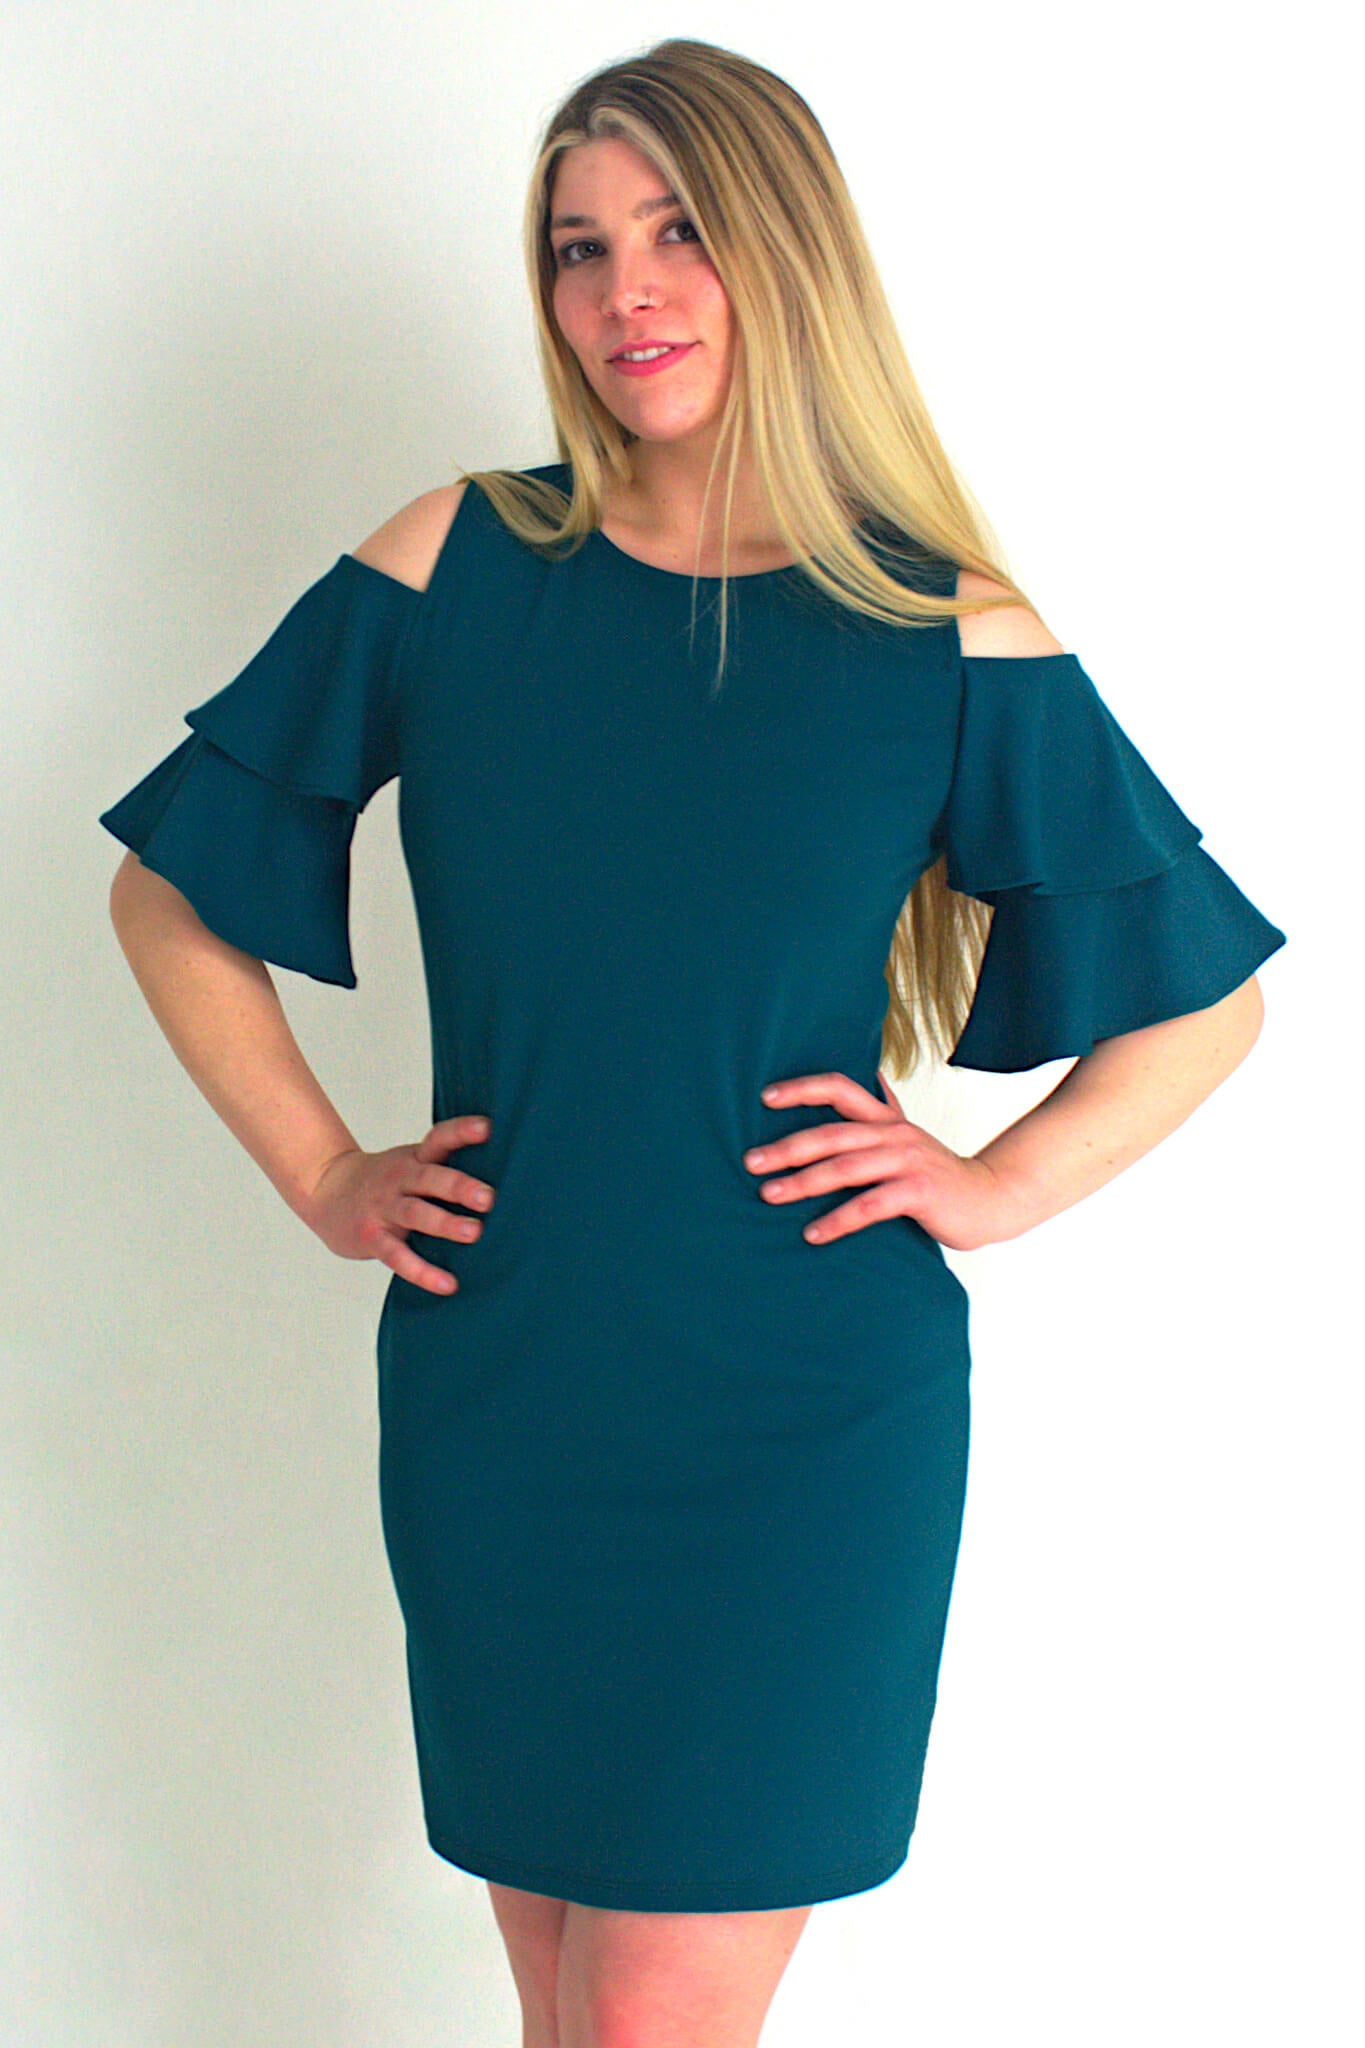 Pose Cold Shoulder Teal Dress - Never Worn (Tailoring Included)